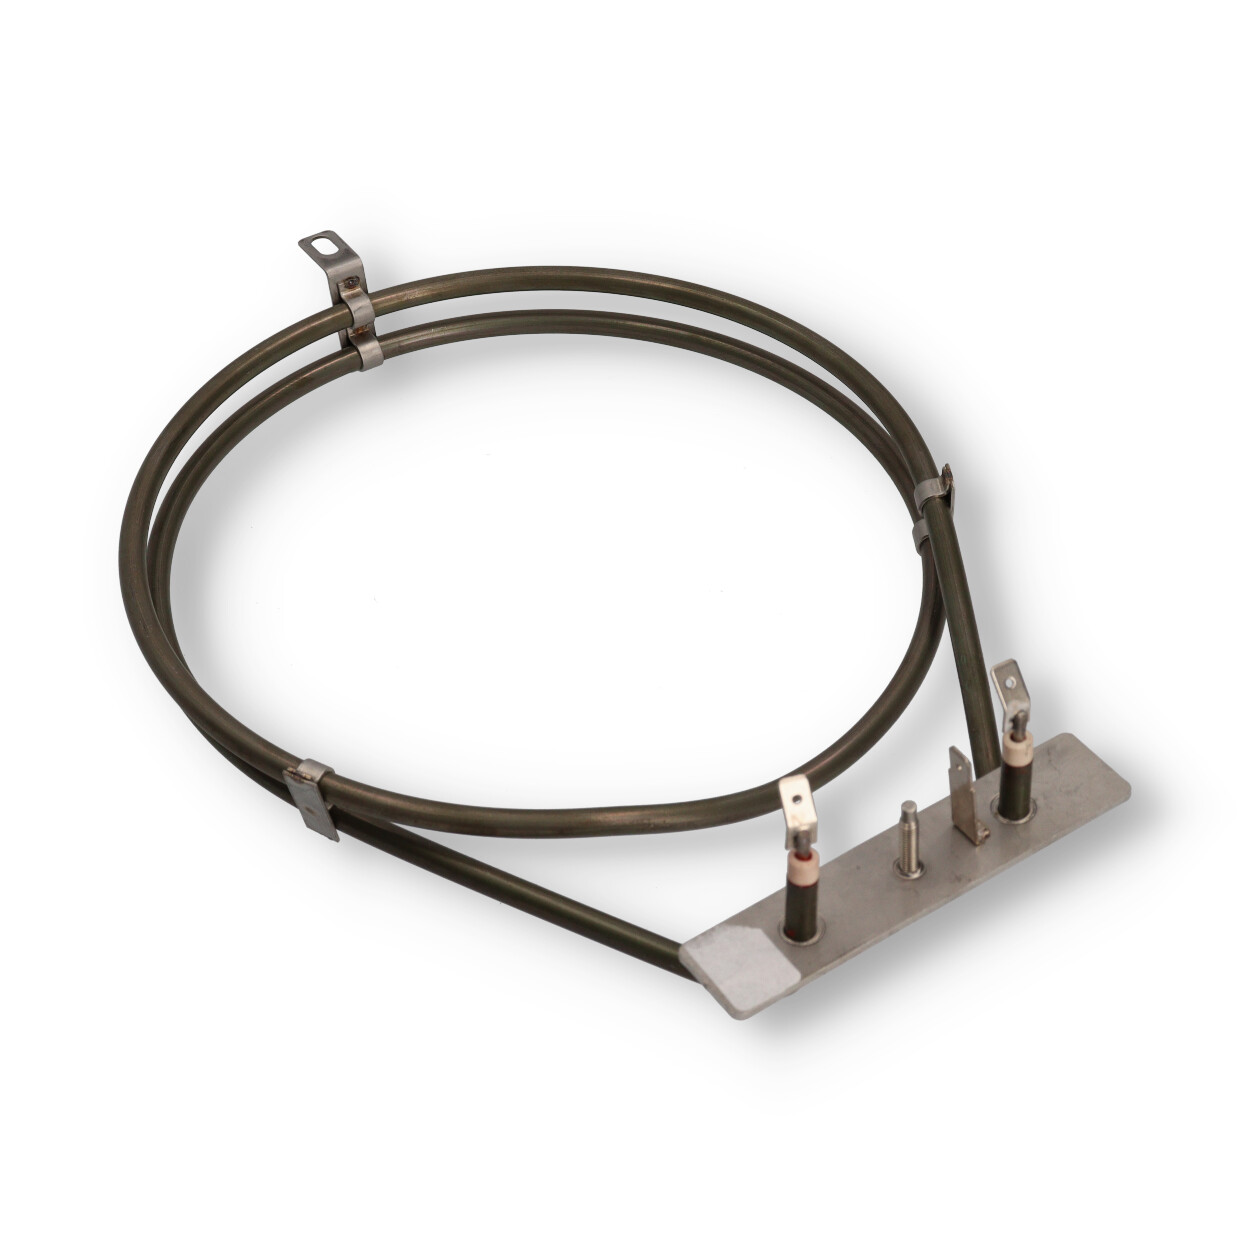 RESISTENCIA FORNO TURBO PHILIPS/ARISTON 2000W 203523